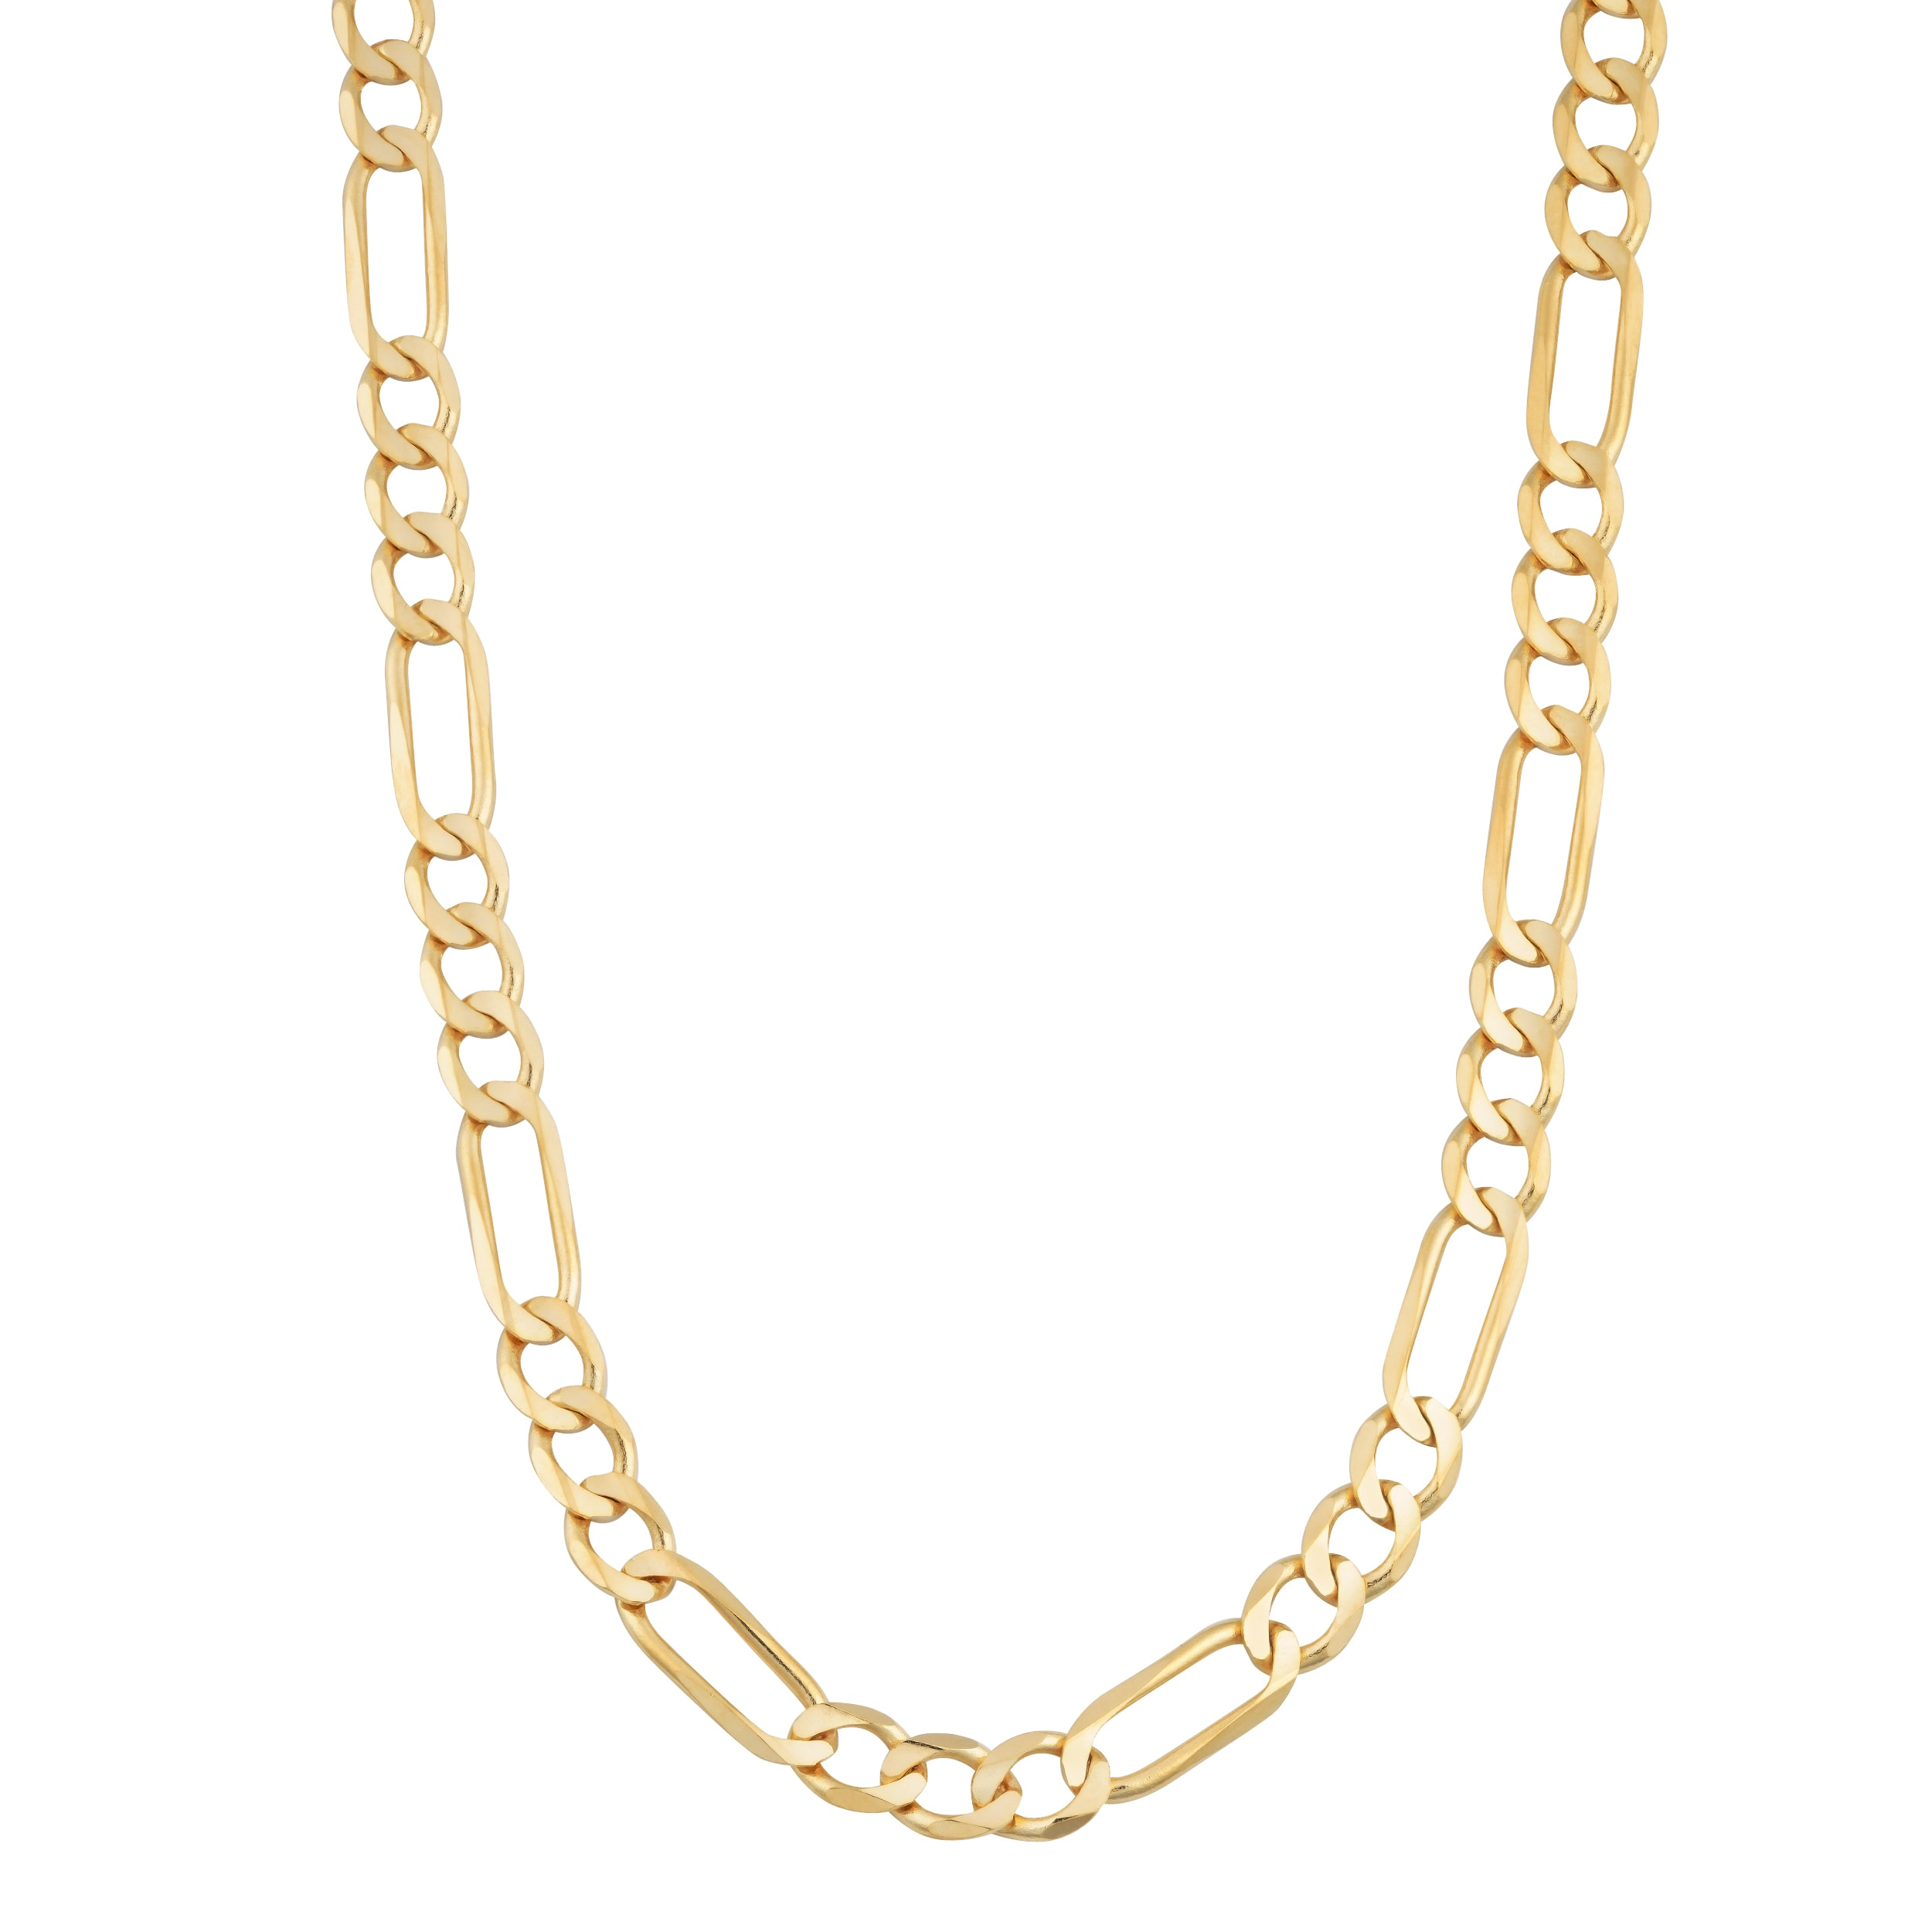 14k Round Wheat Chain Necklace in White Gold Yellow Gold Rose Gold Choice of Lengths 16 18 20 24 30 22 and Variety of mm Options